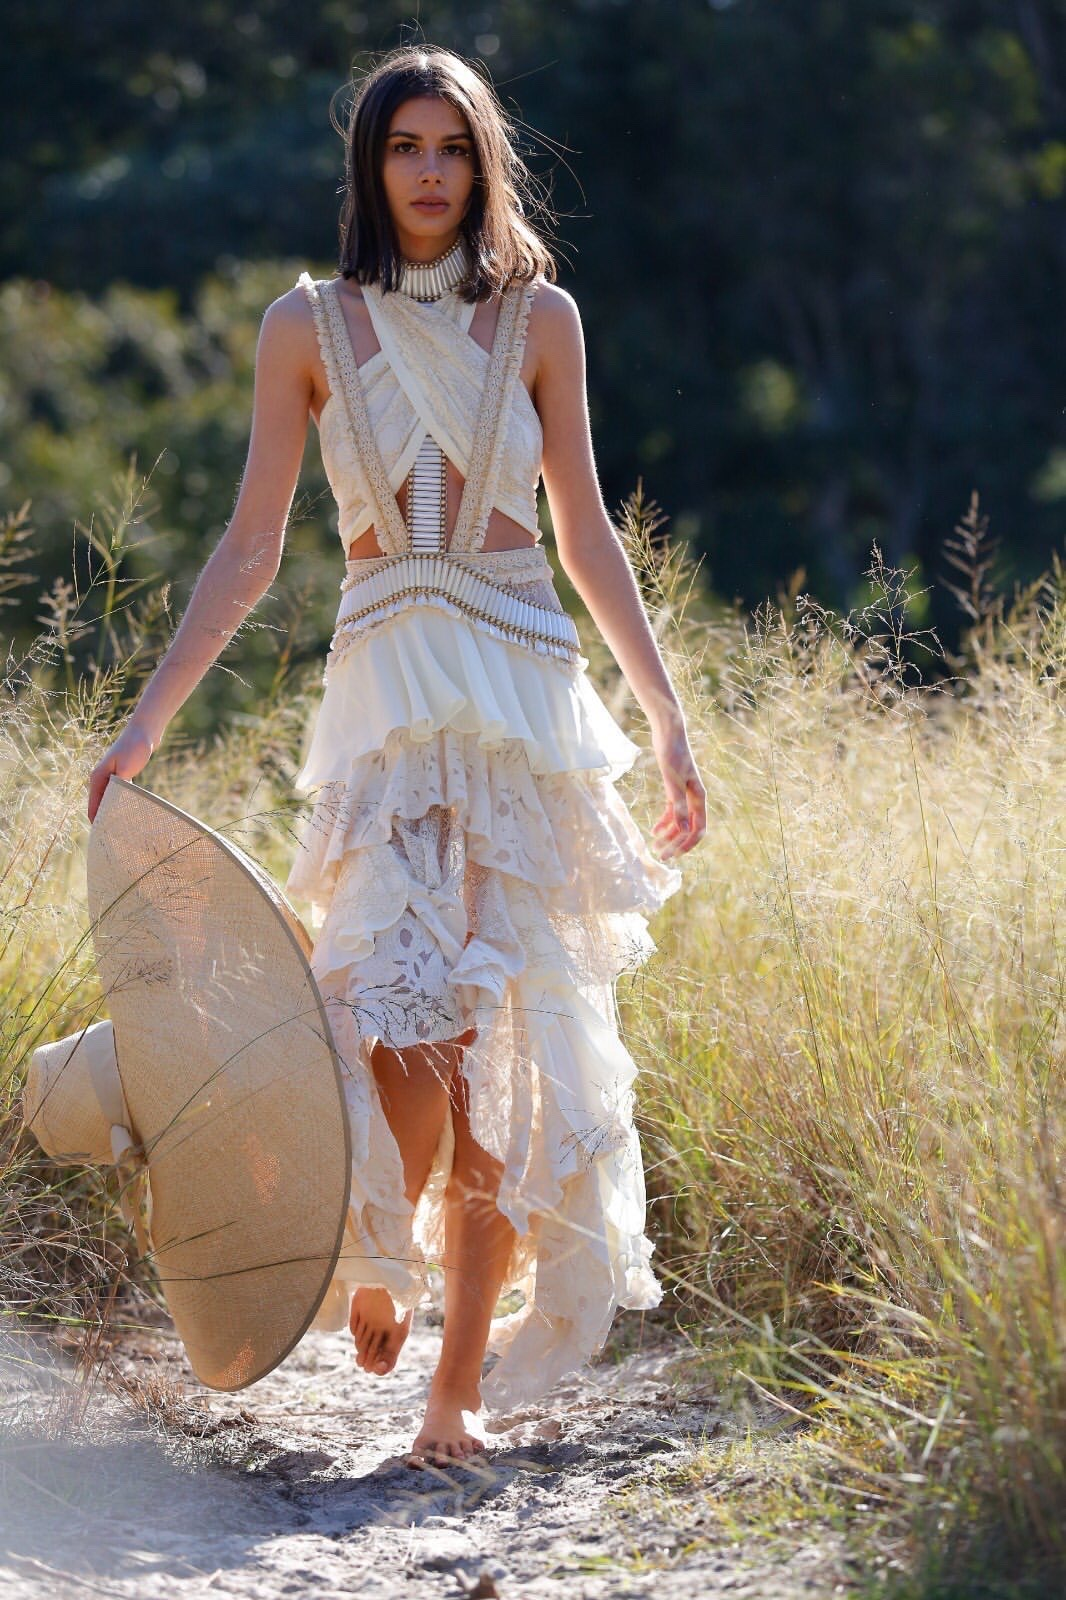 NEUE model Monique Lane for Ixiah x Freepeople campaign